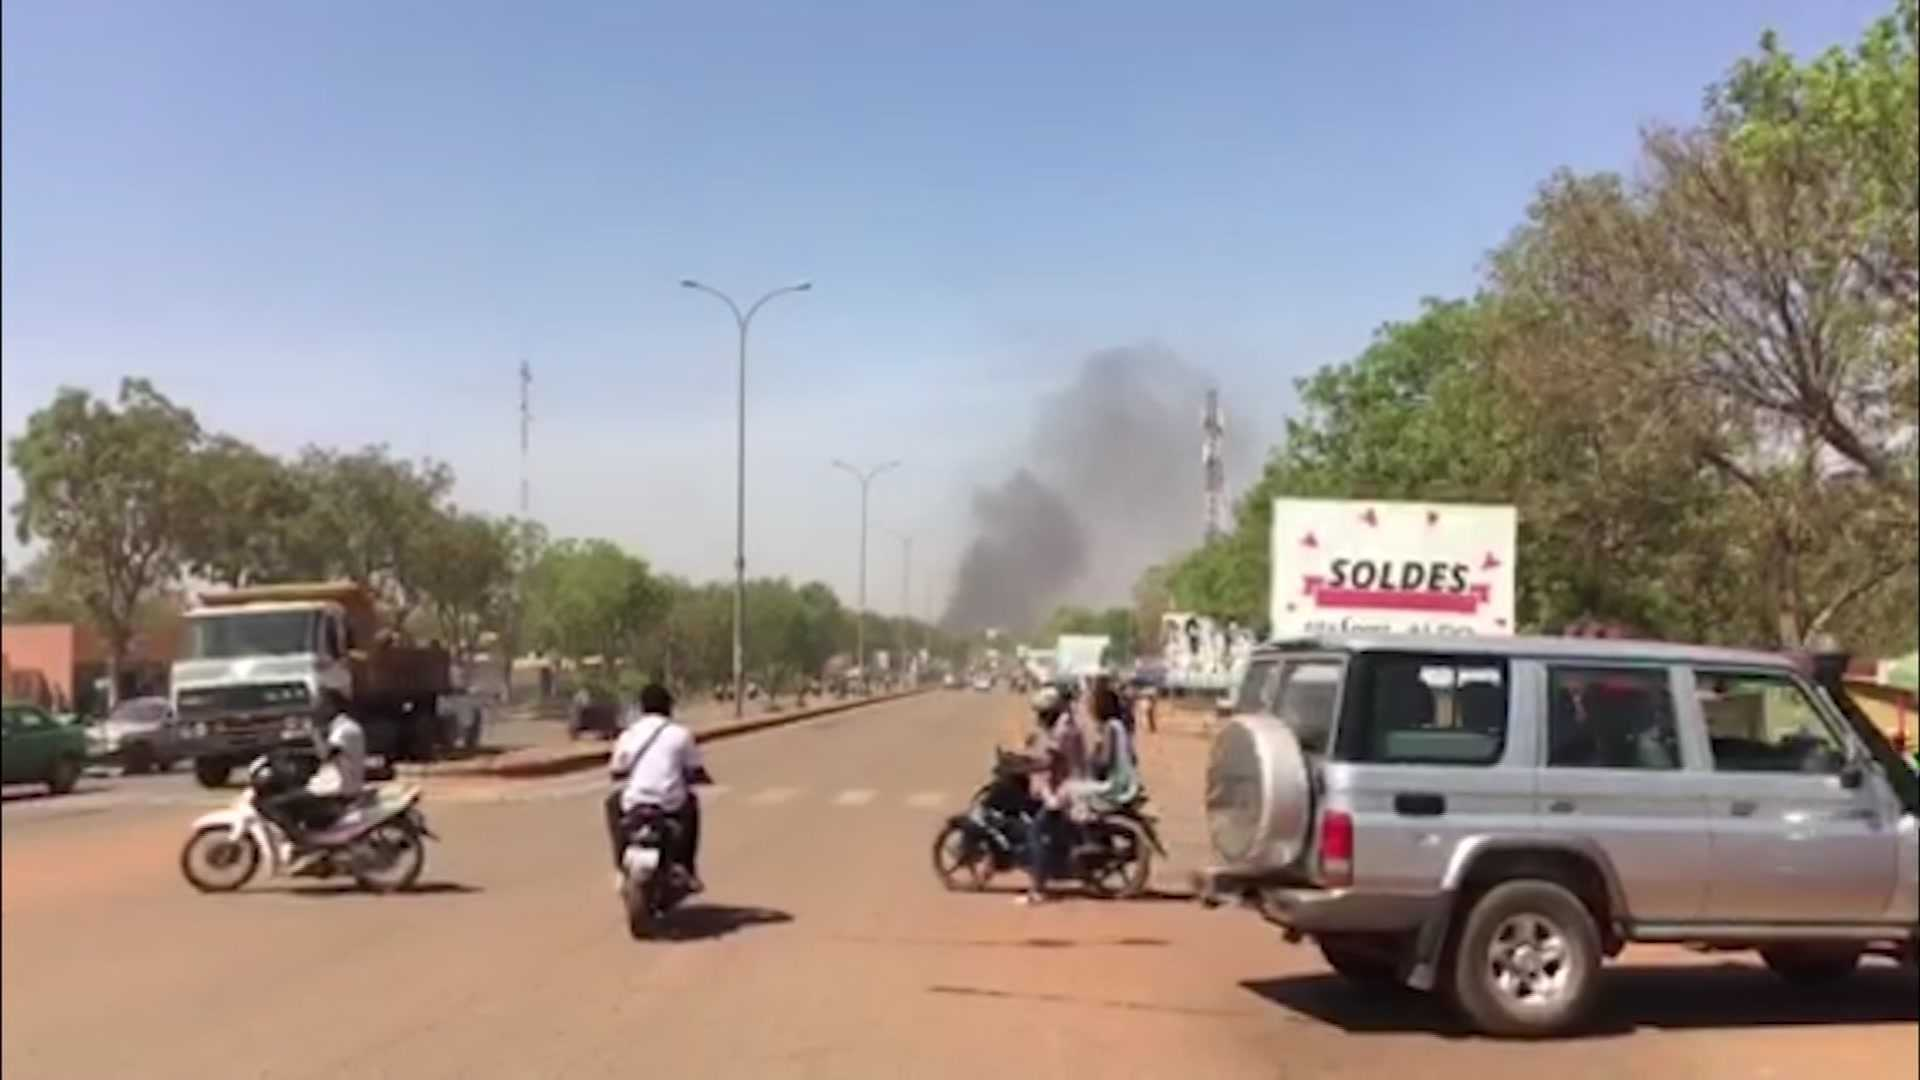 At Least 13 Killed In Attacks In Burkina Faso class=